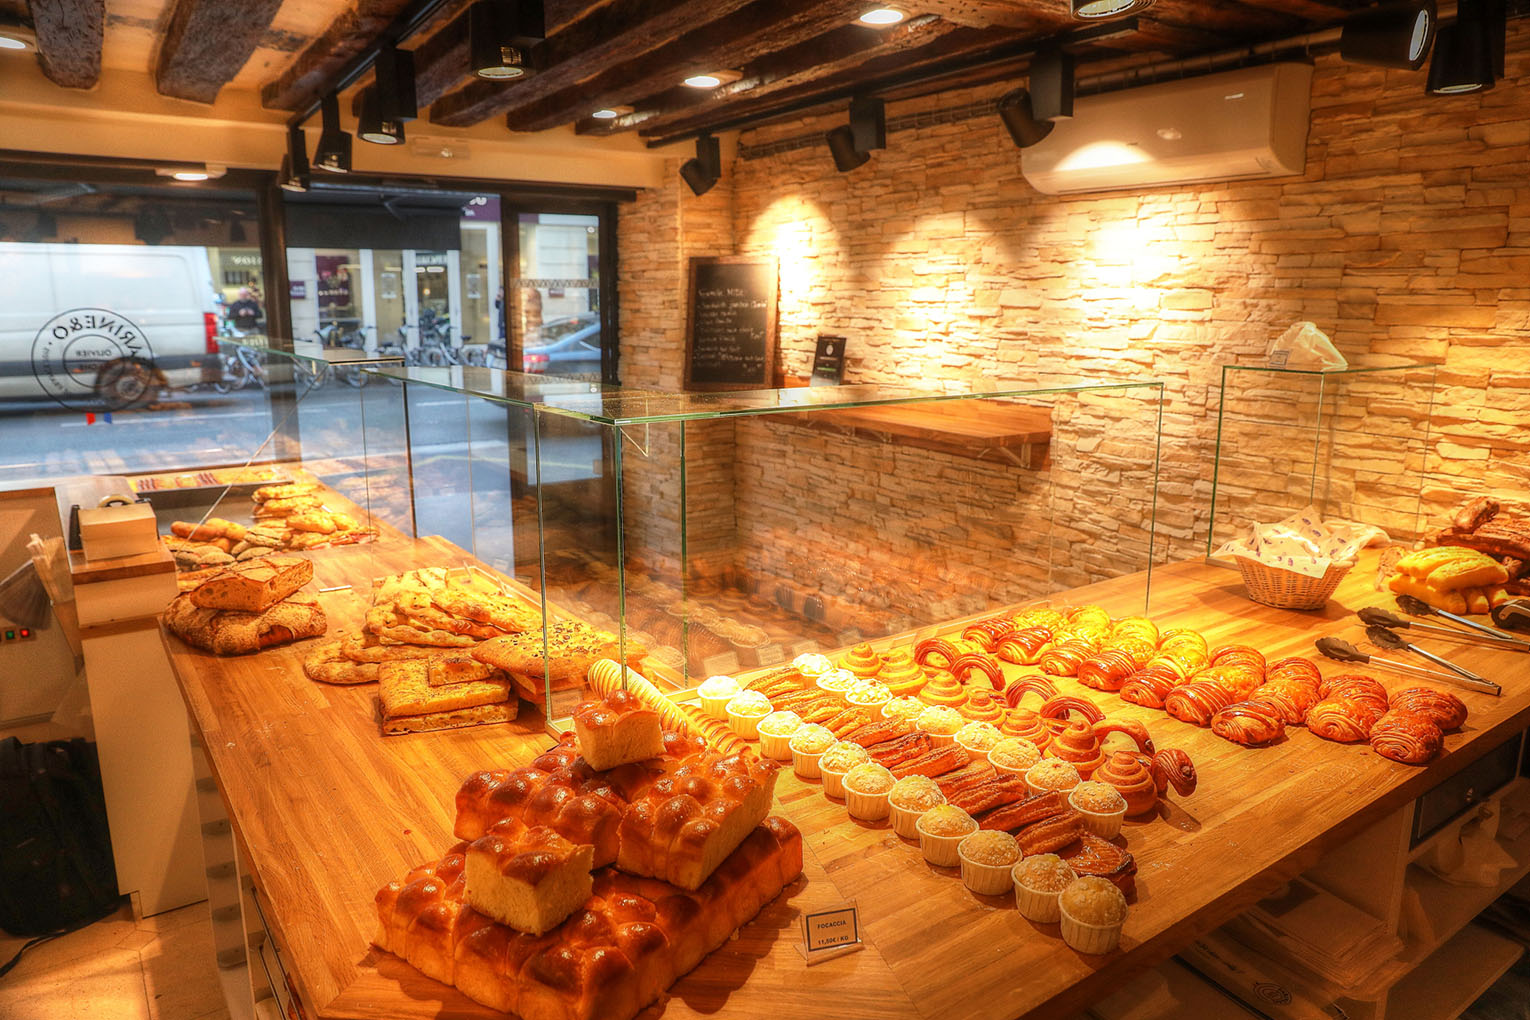 boulangerie_farineo15